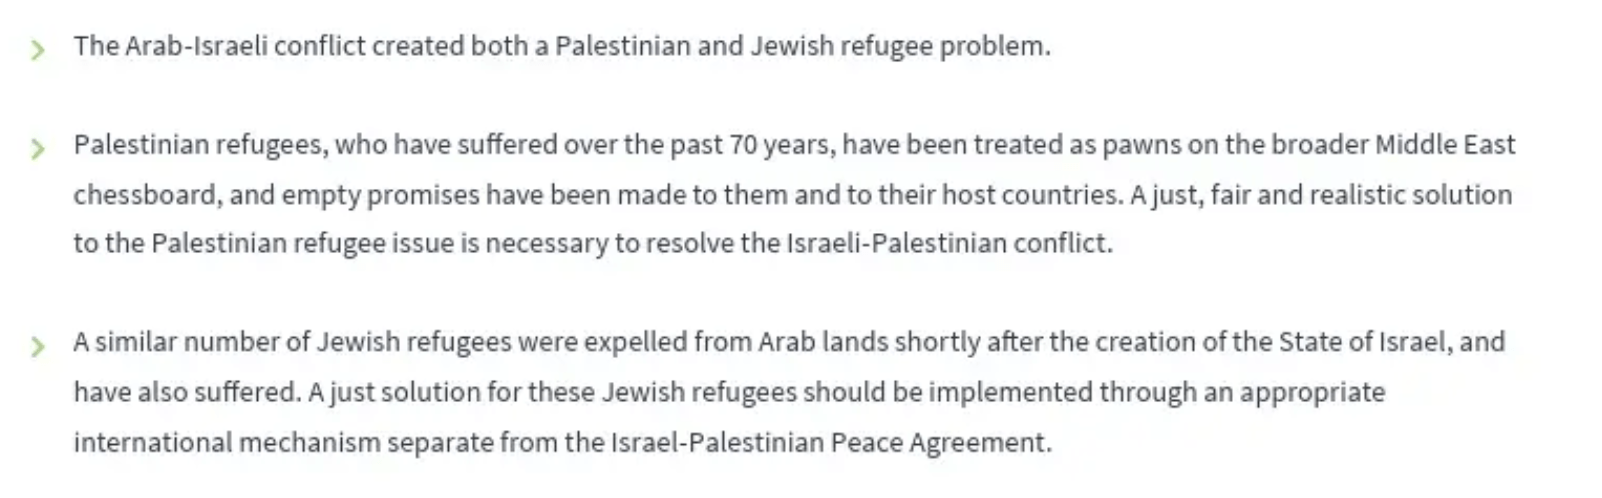 About the treatment of Jewish and Arab refugees